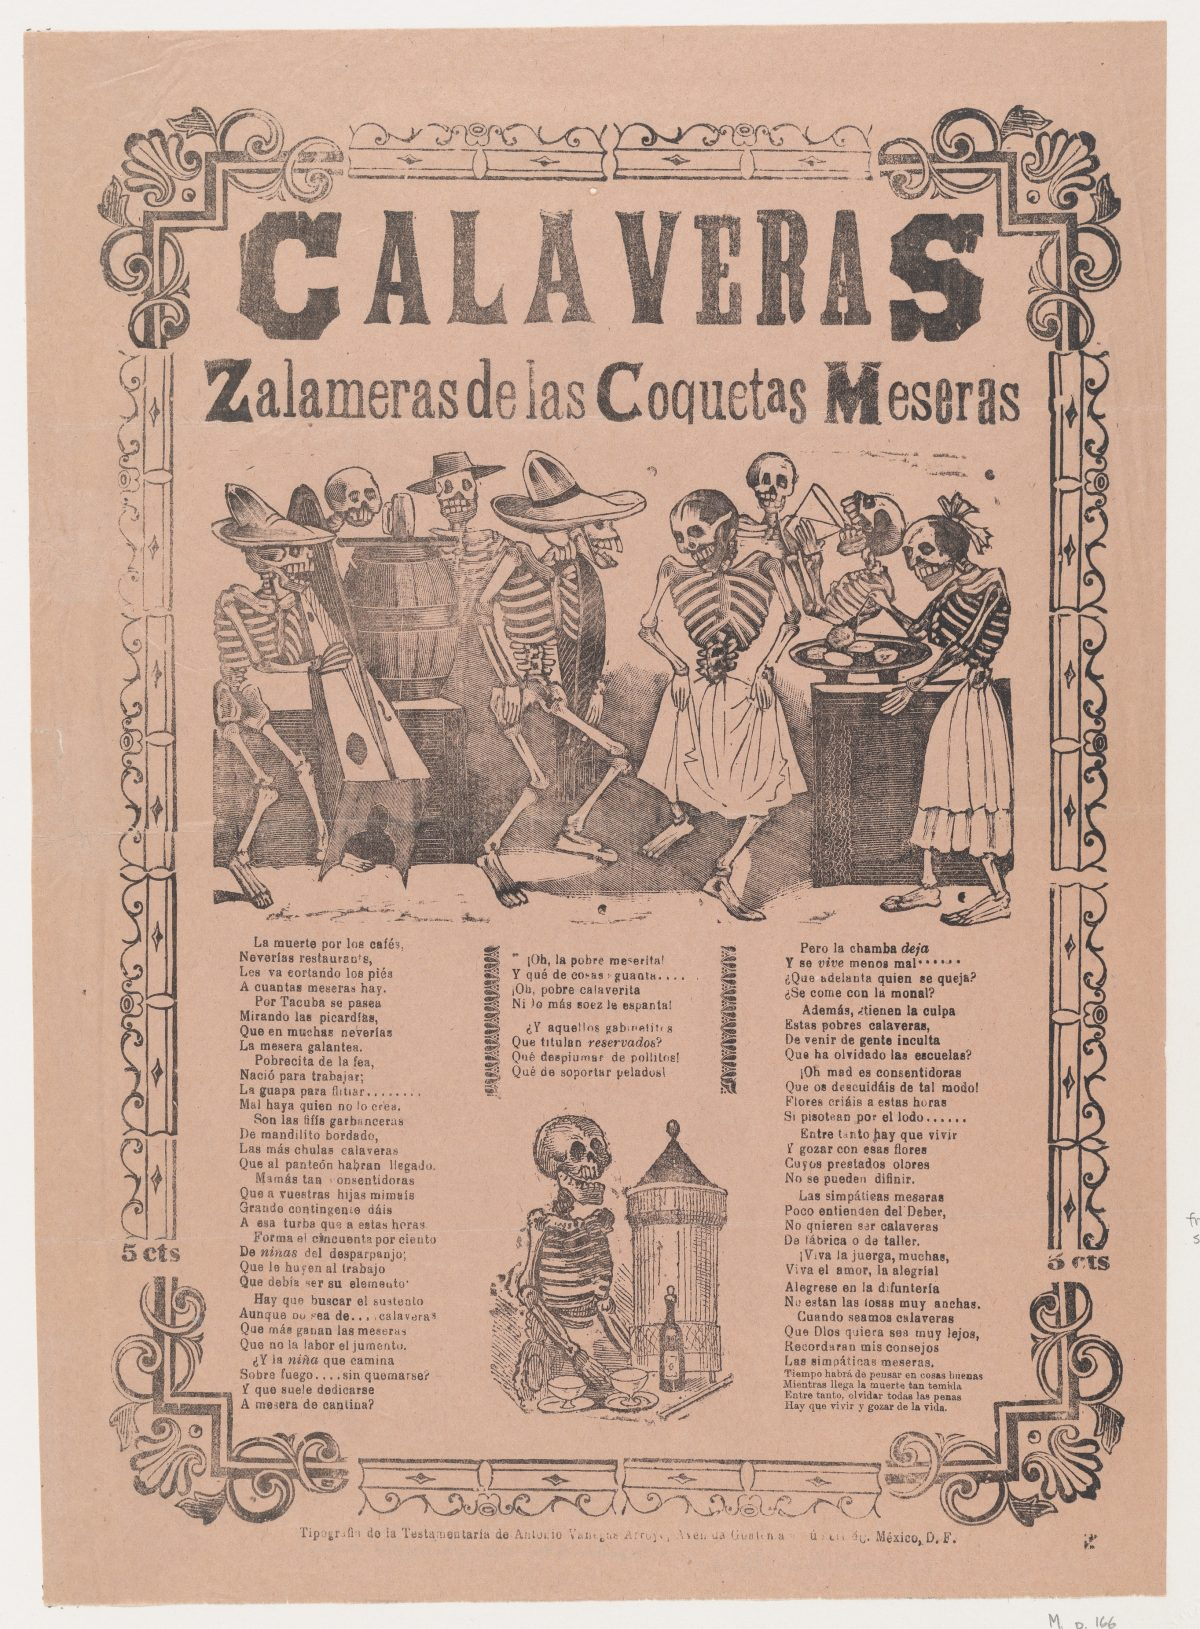 Skeletons (calaveras) dancing and drinking, corrida in bottom section Ca. 1910 José Guadalupe Posada